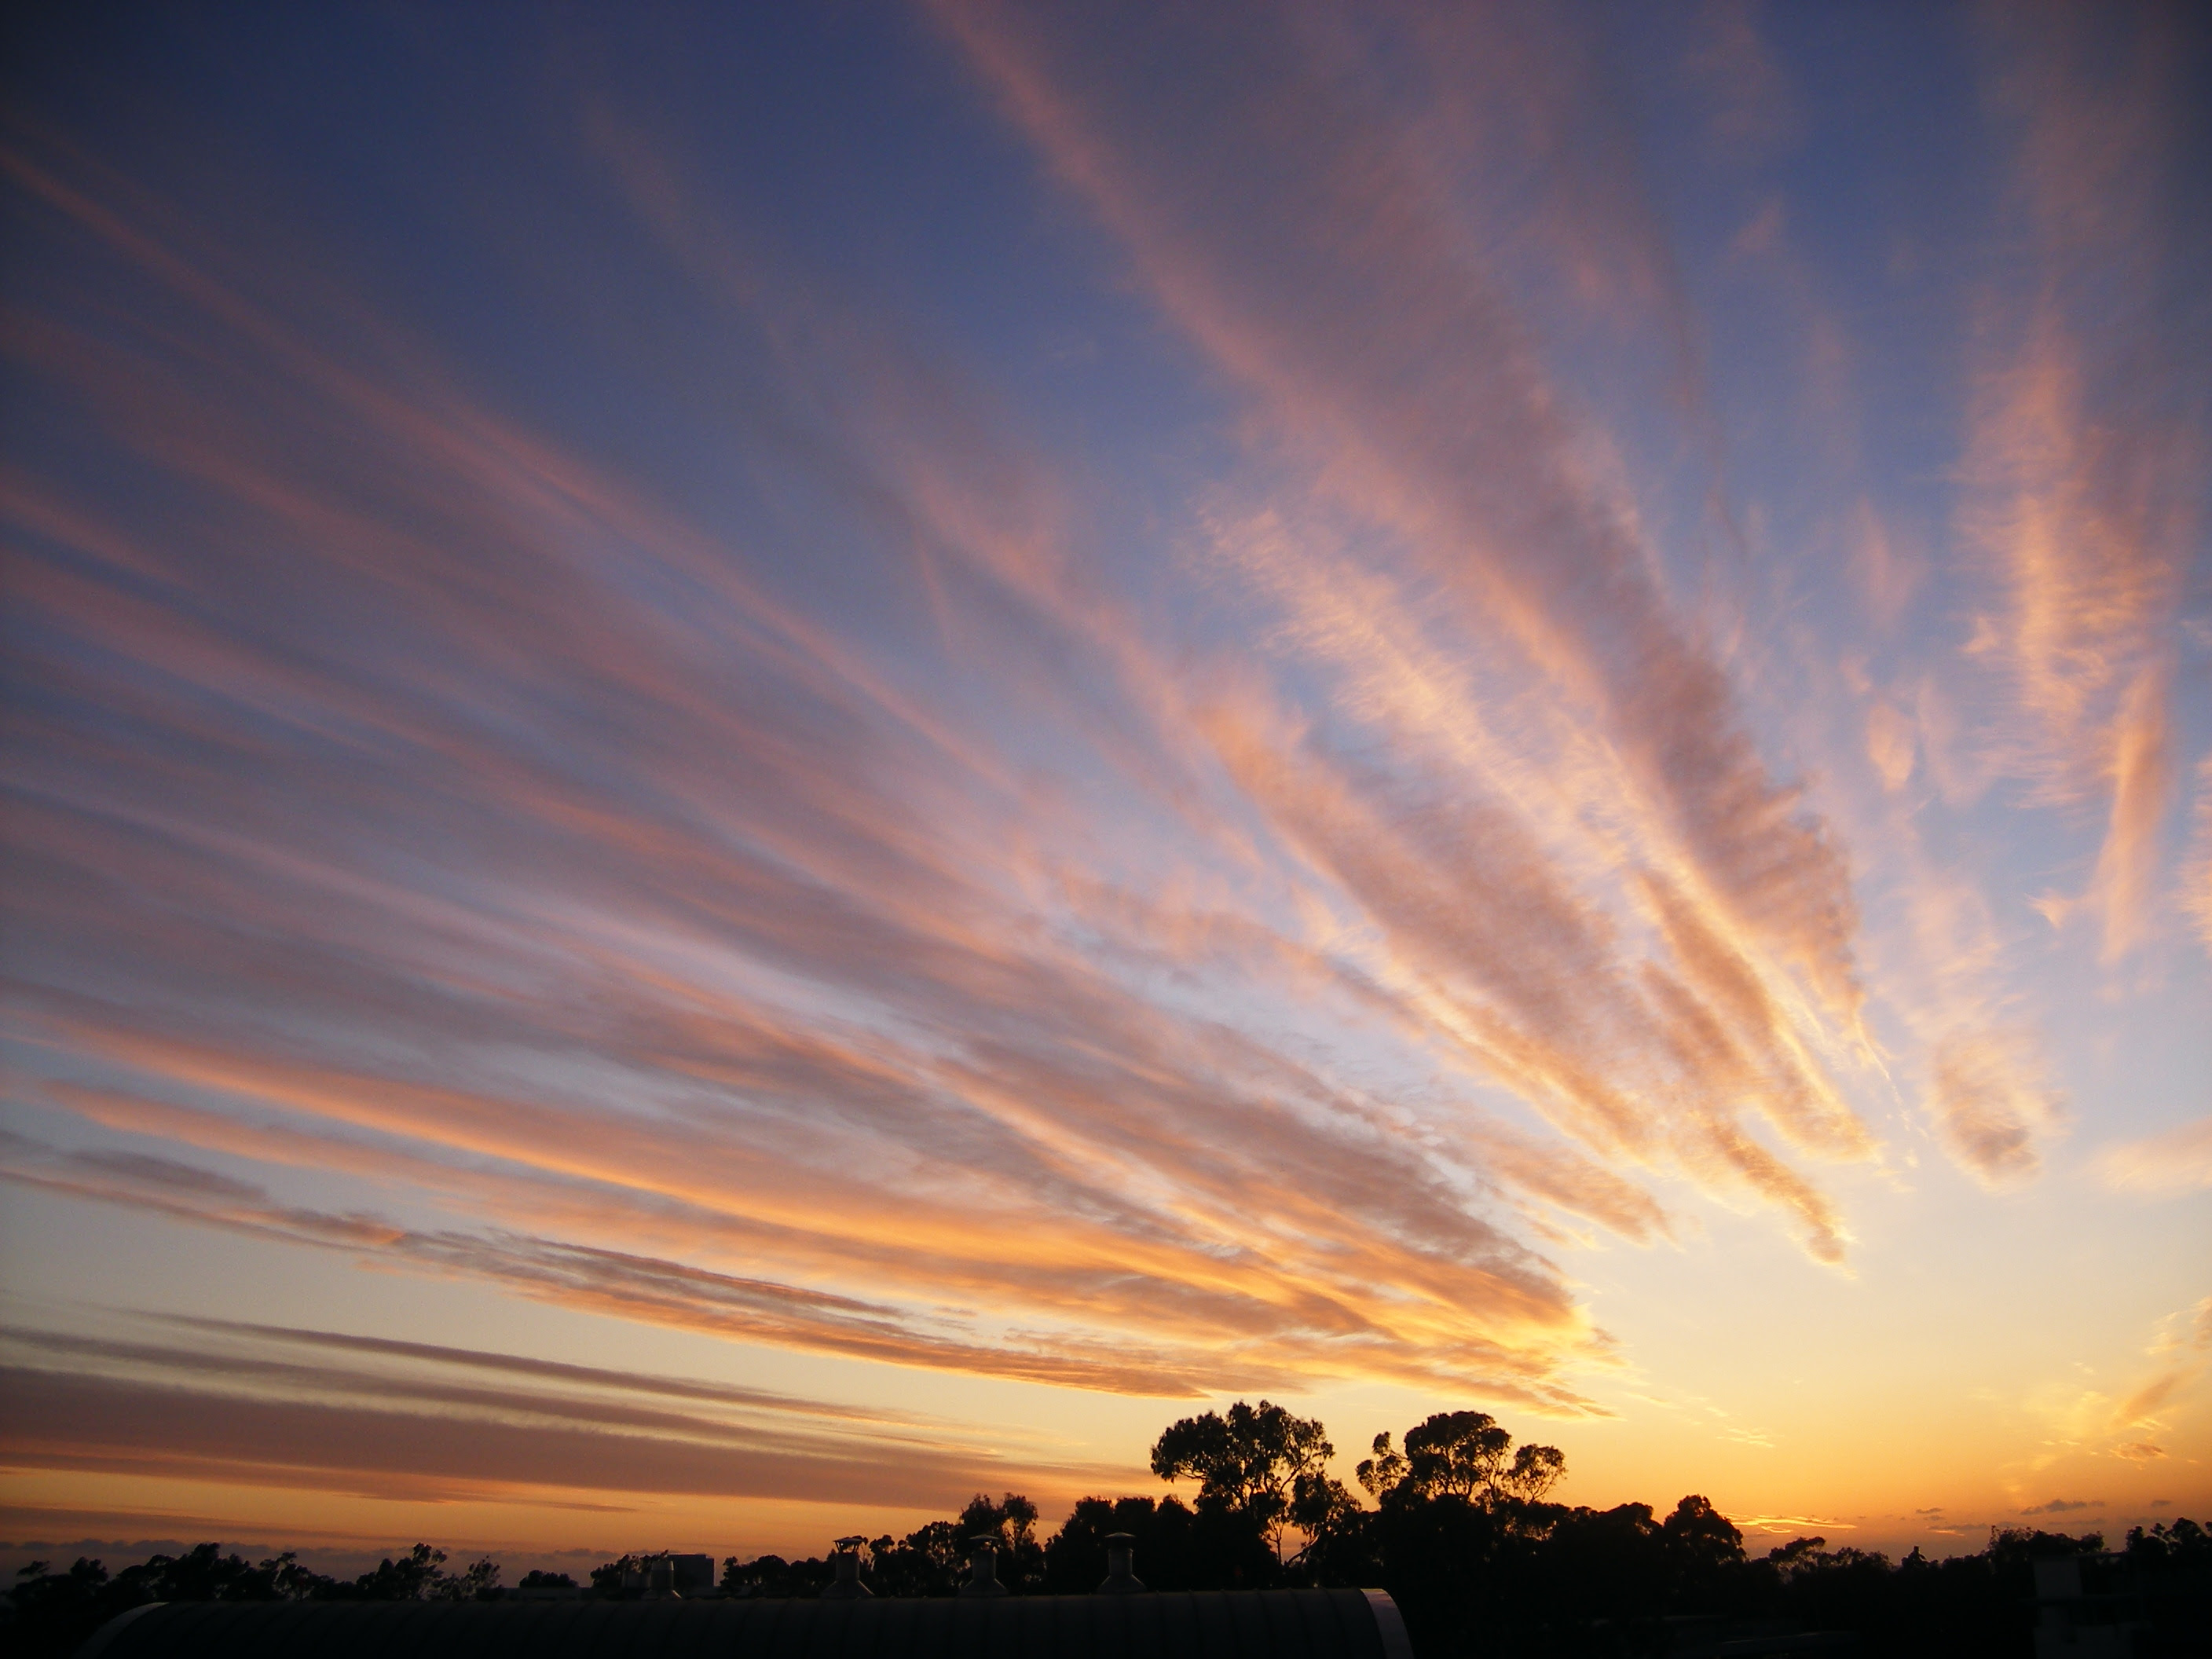 33 Beautiful Sunrise and Sunset Pictures - The WoW Style